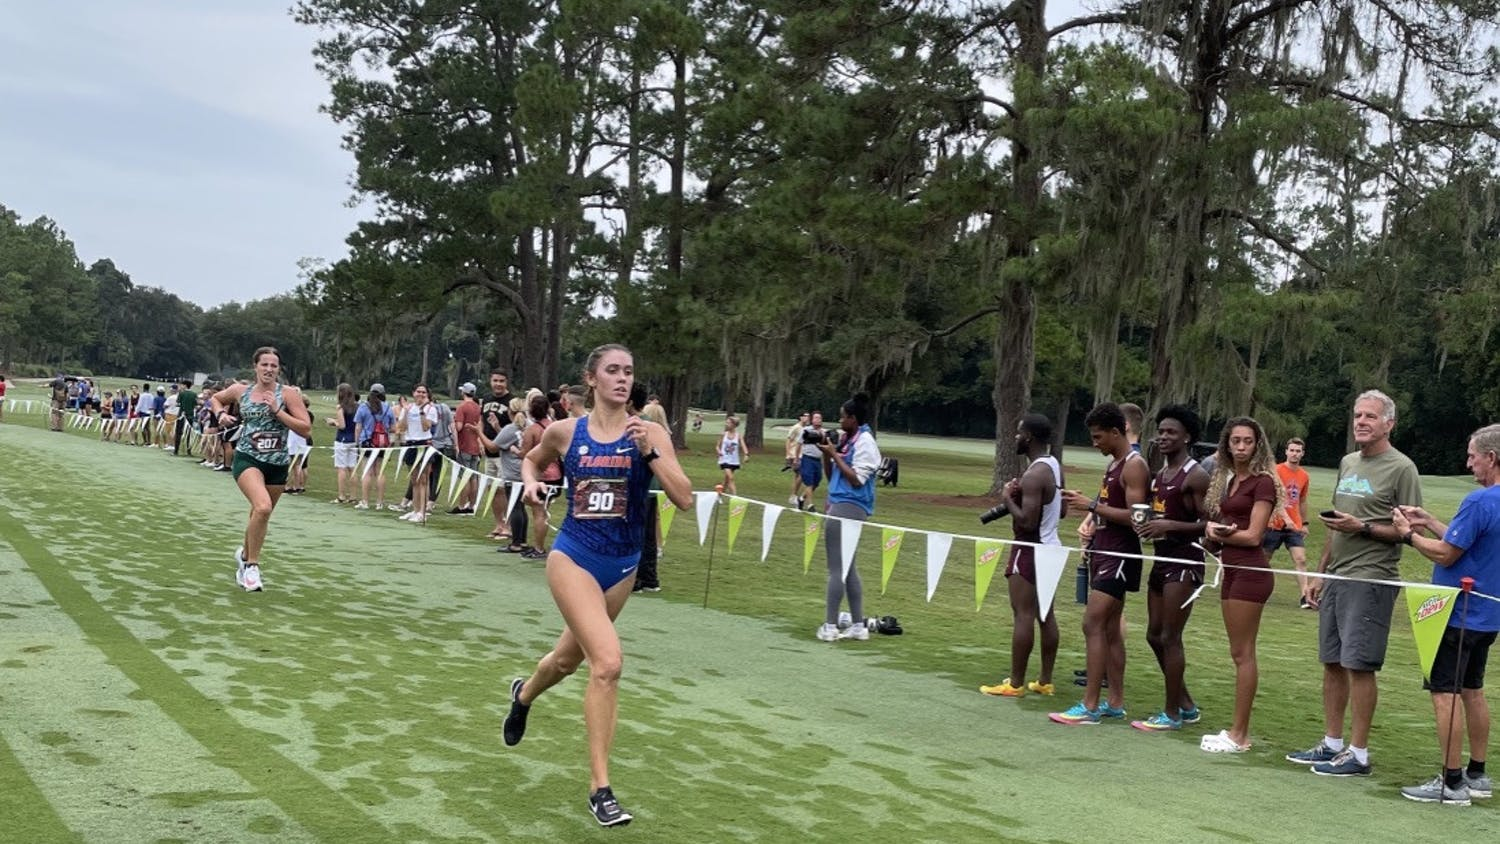 Florida's Grace Blair competes during the Mountain Dew Invitational in Gainesville on Sept. 11.